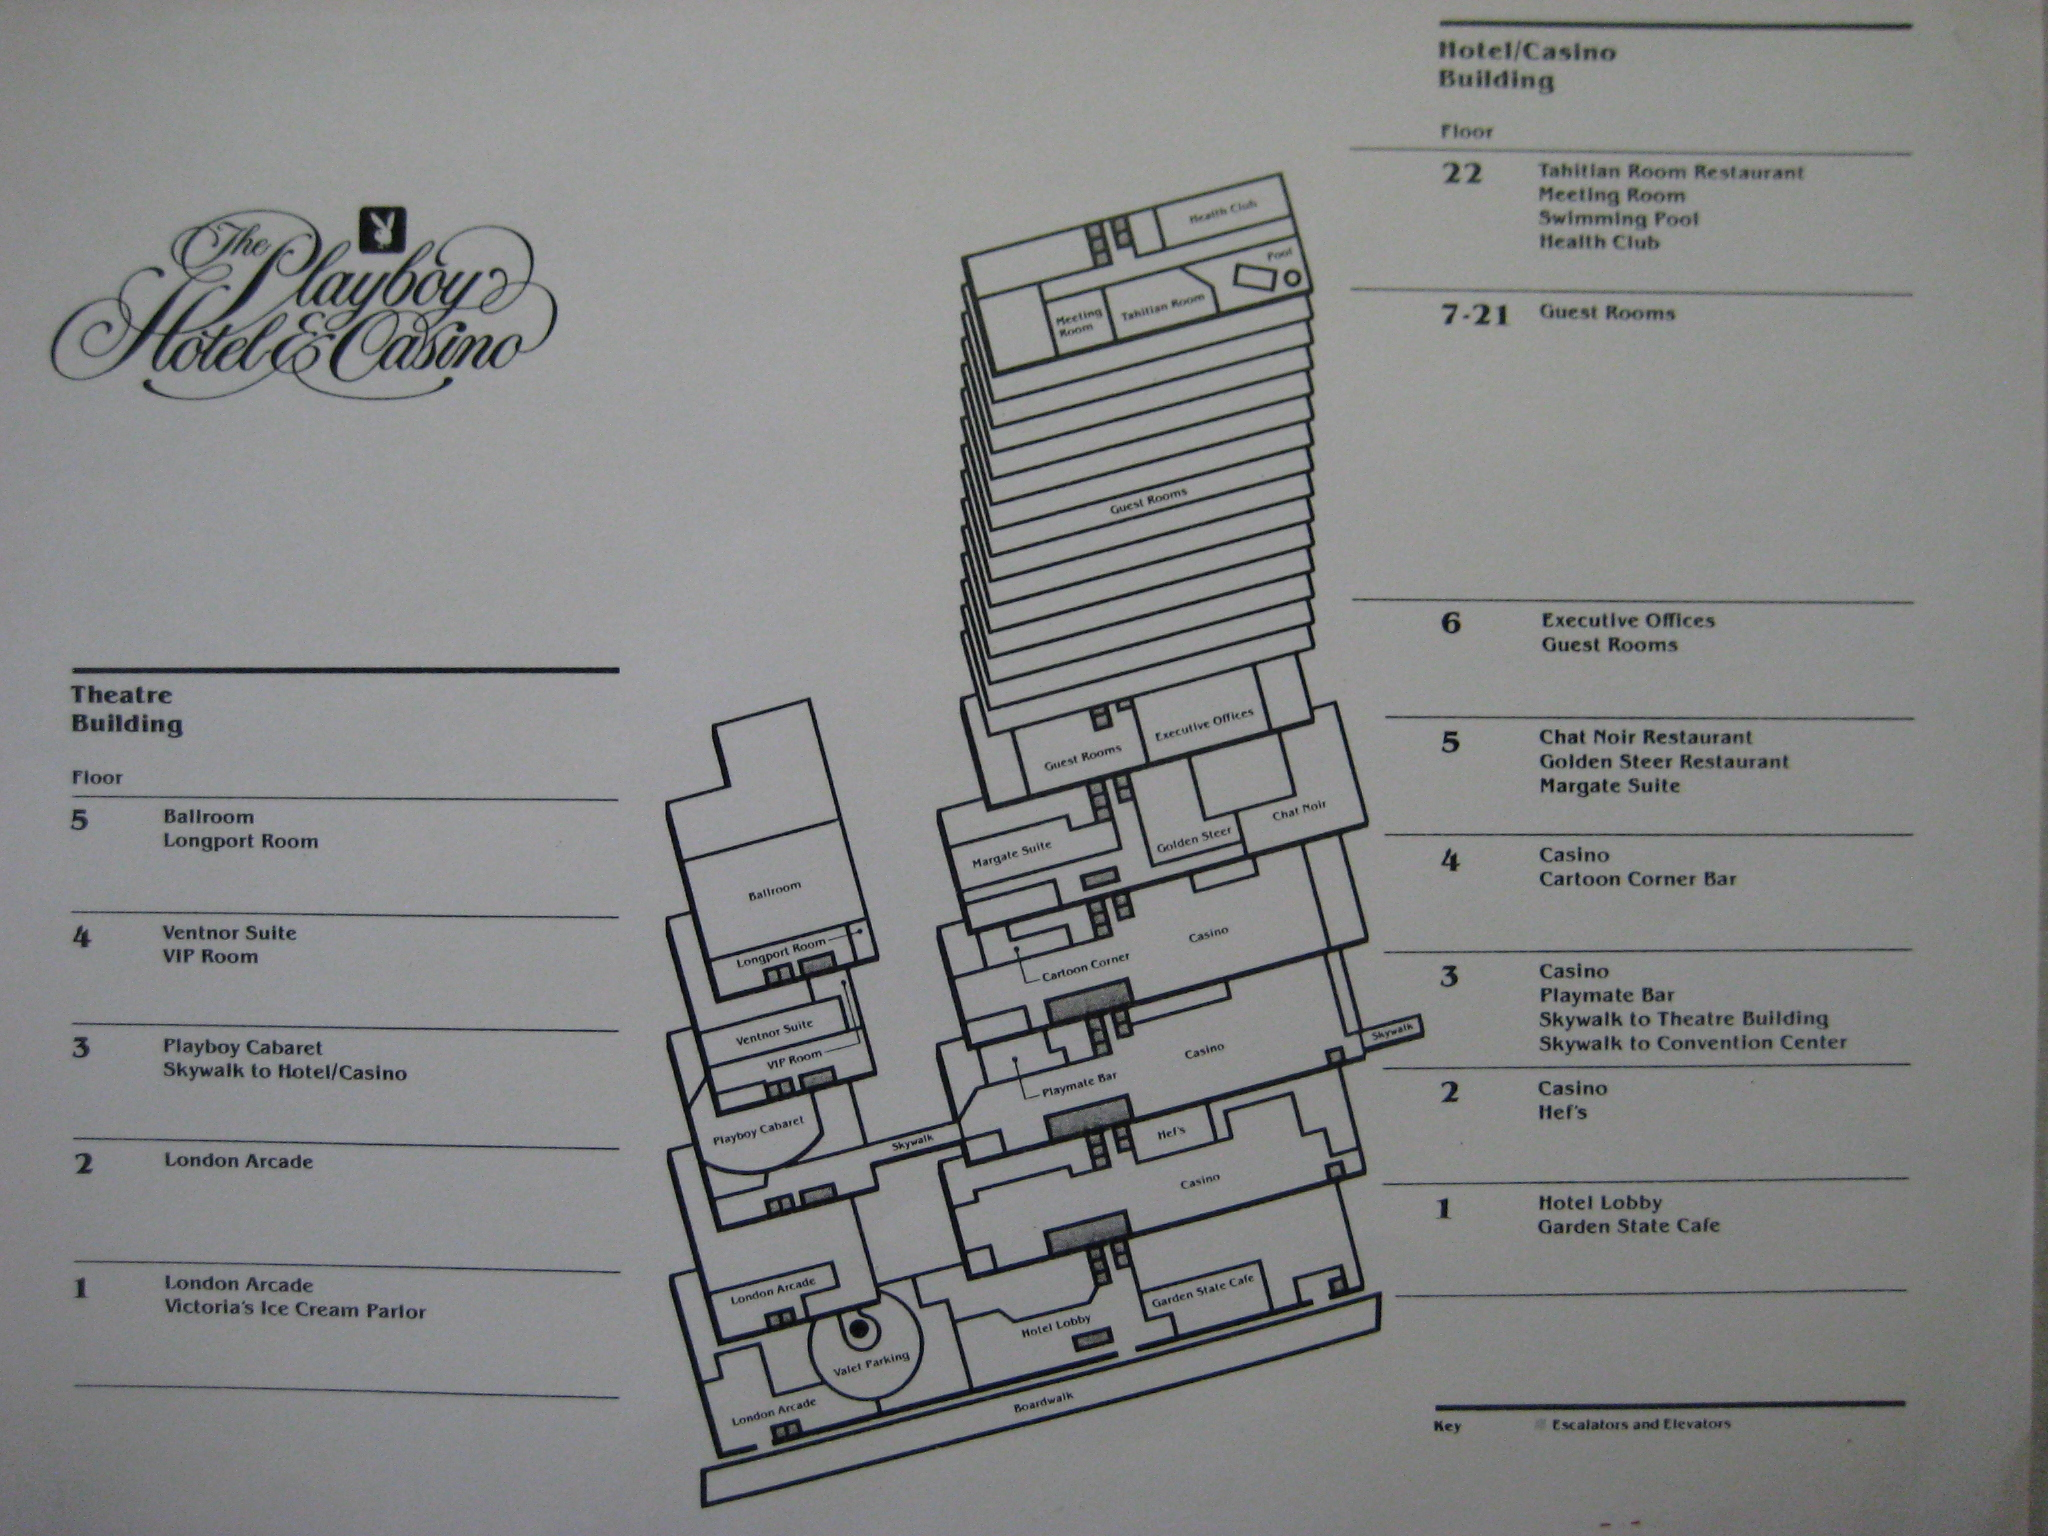 Playboy casino Atlantic City Building layout